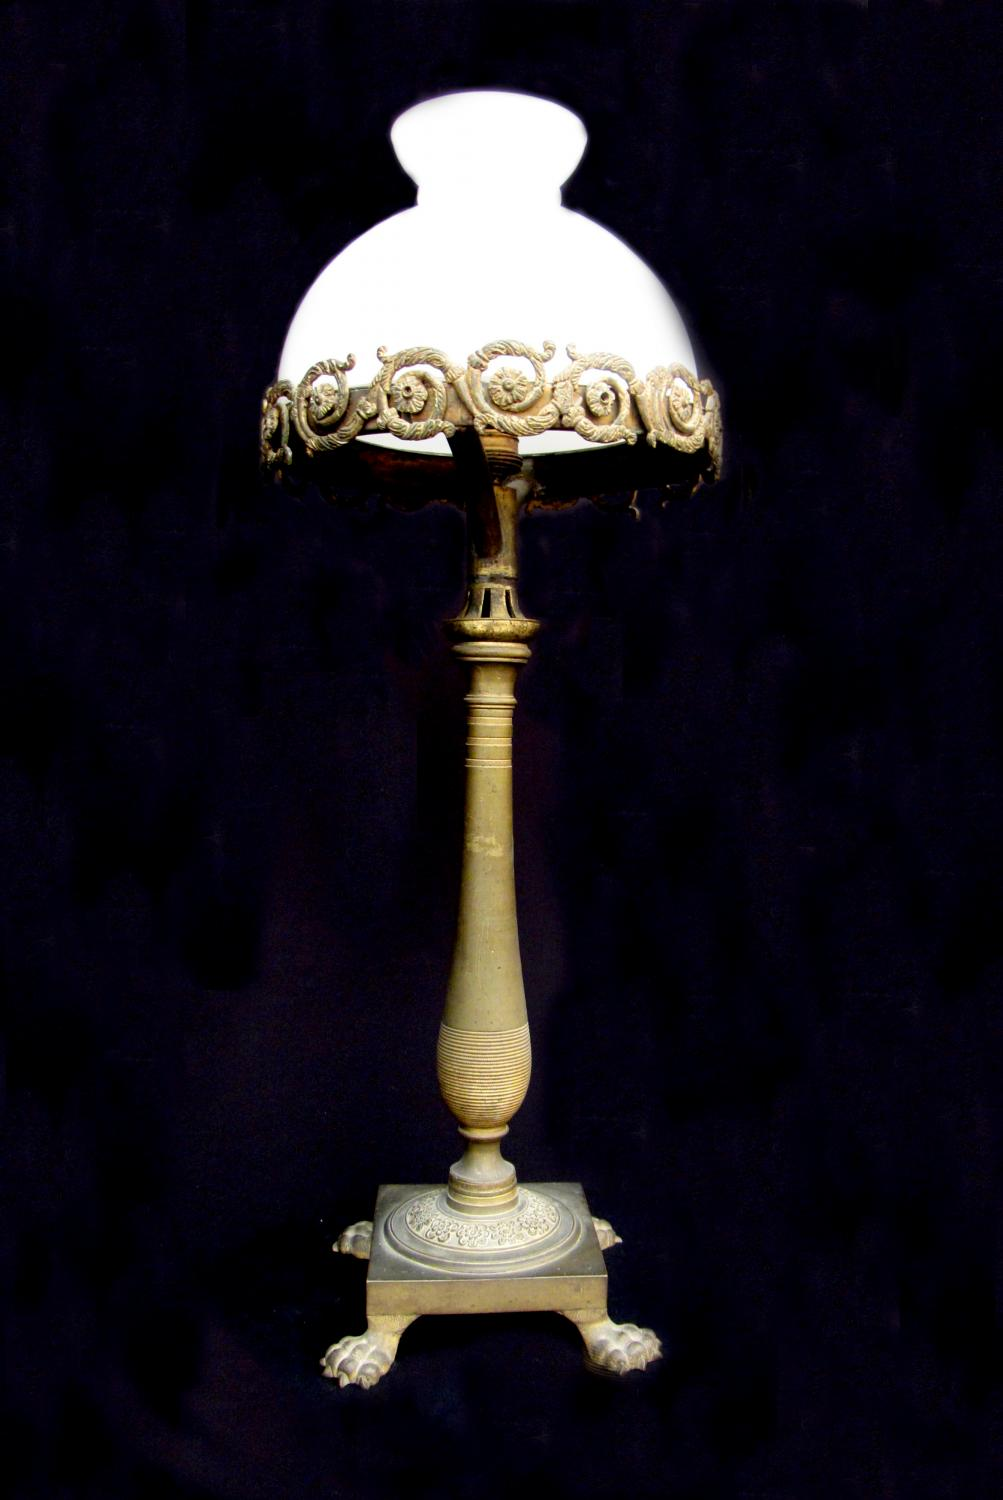 A bronze table lamp